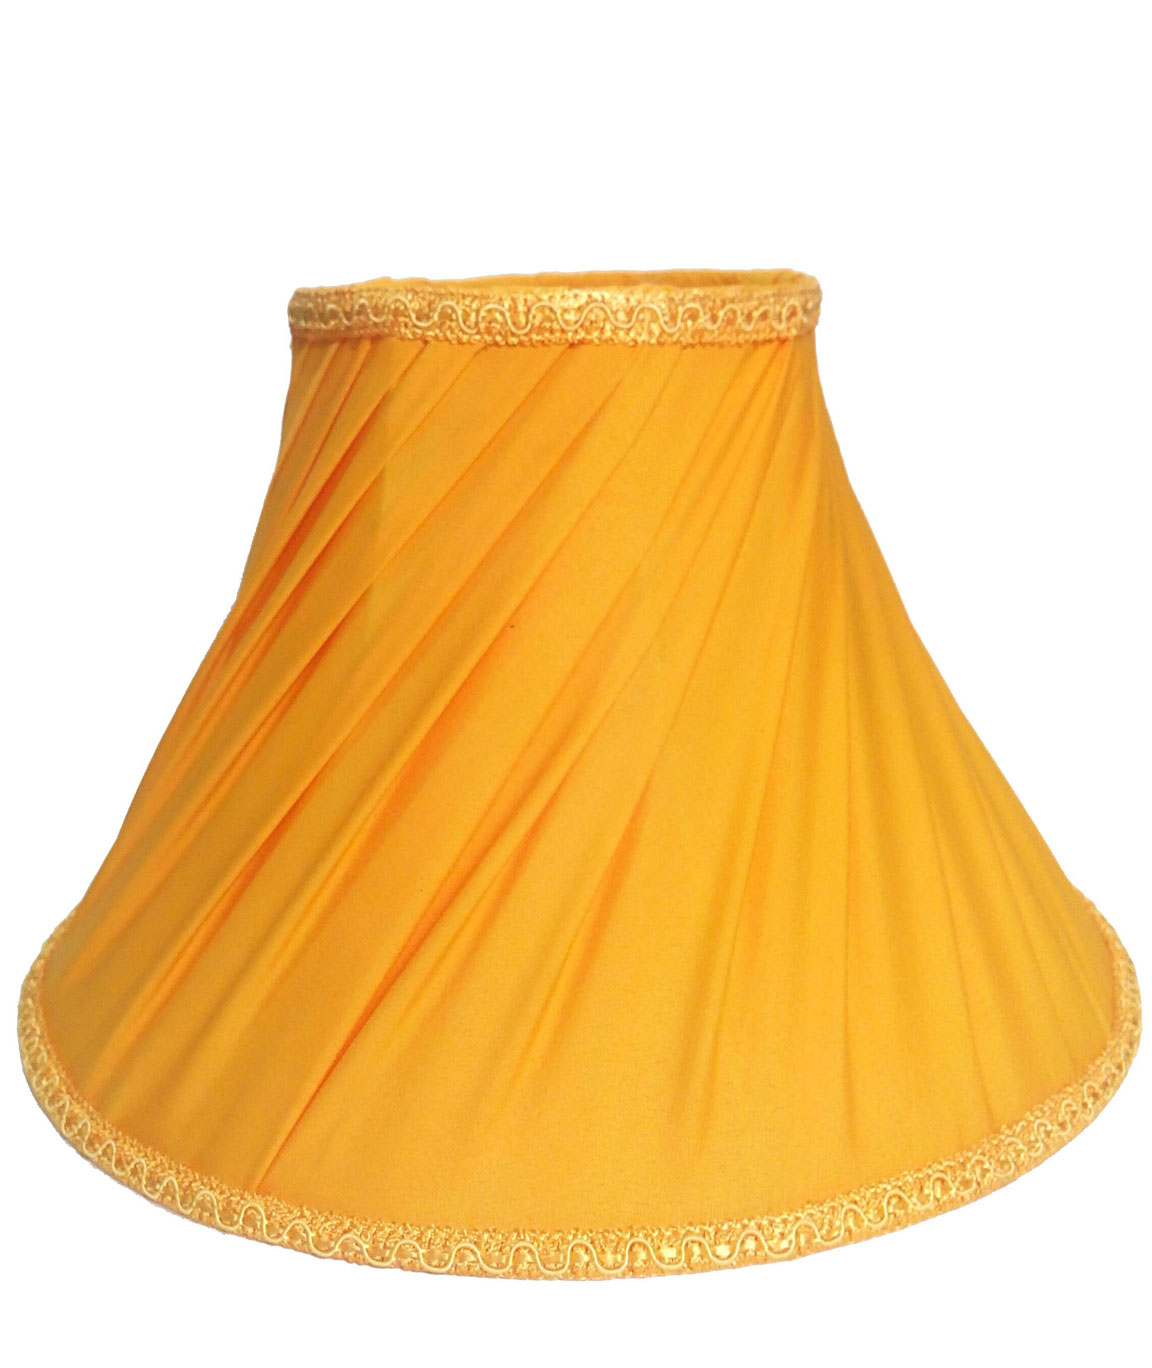 RDC 10 Inches Round Slanting Pleated Yellow with Lace Border Lamp Shade for Table Lamp